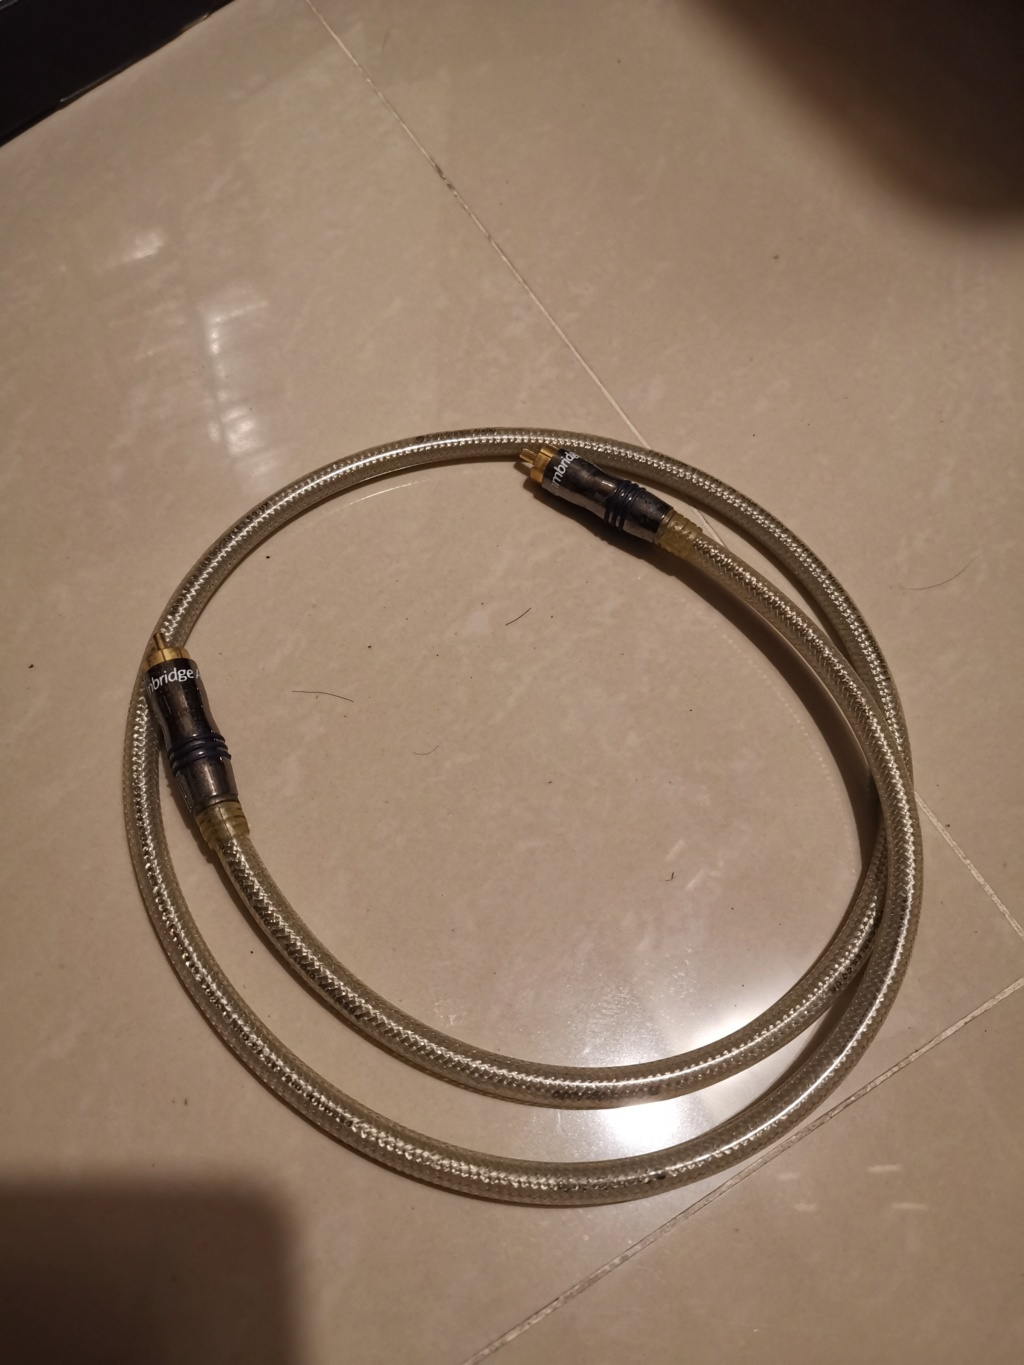 Cambridge Audio Coaxial Cable (Sold) Img_2023